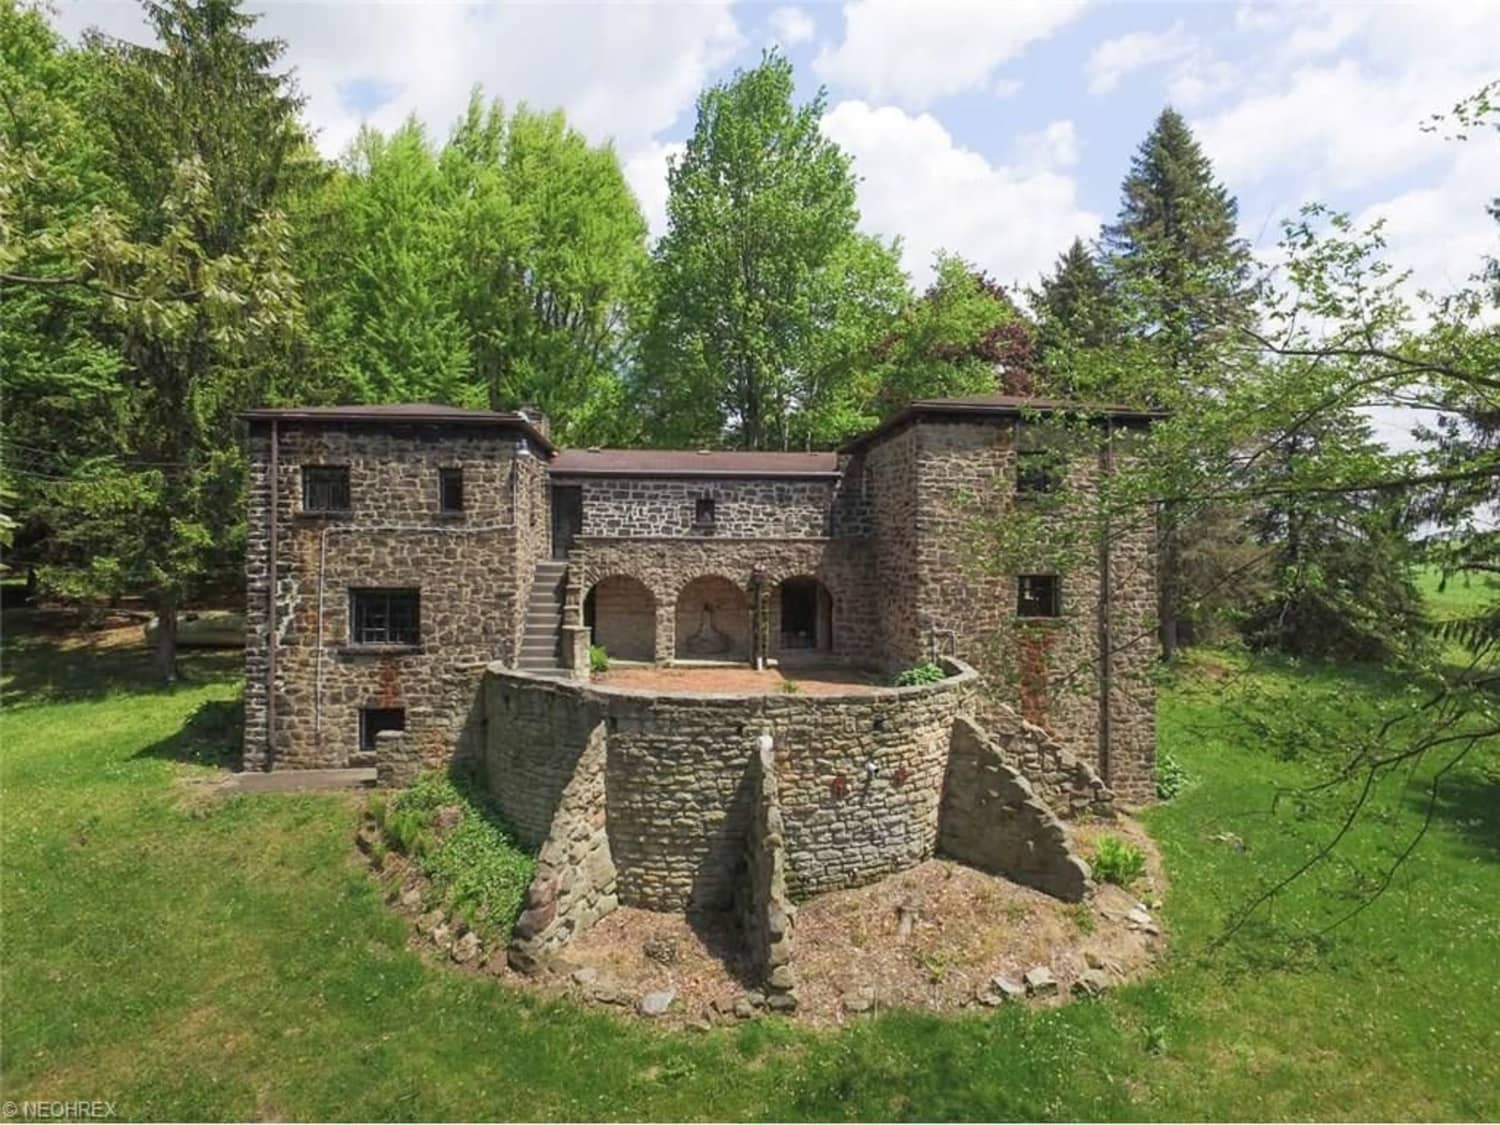 An Ohio Castle That Costs Less Than a Condo